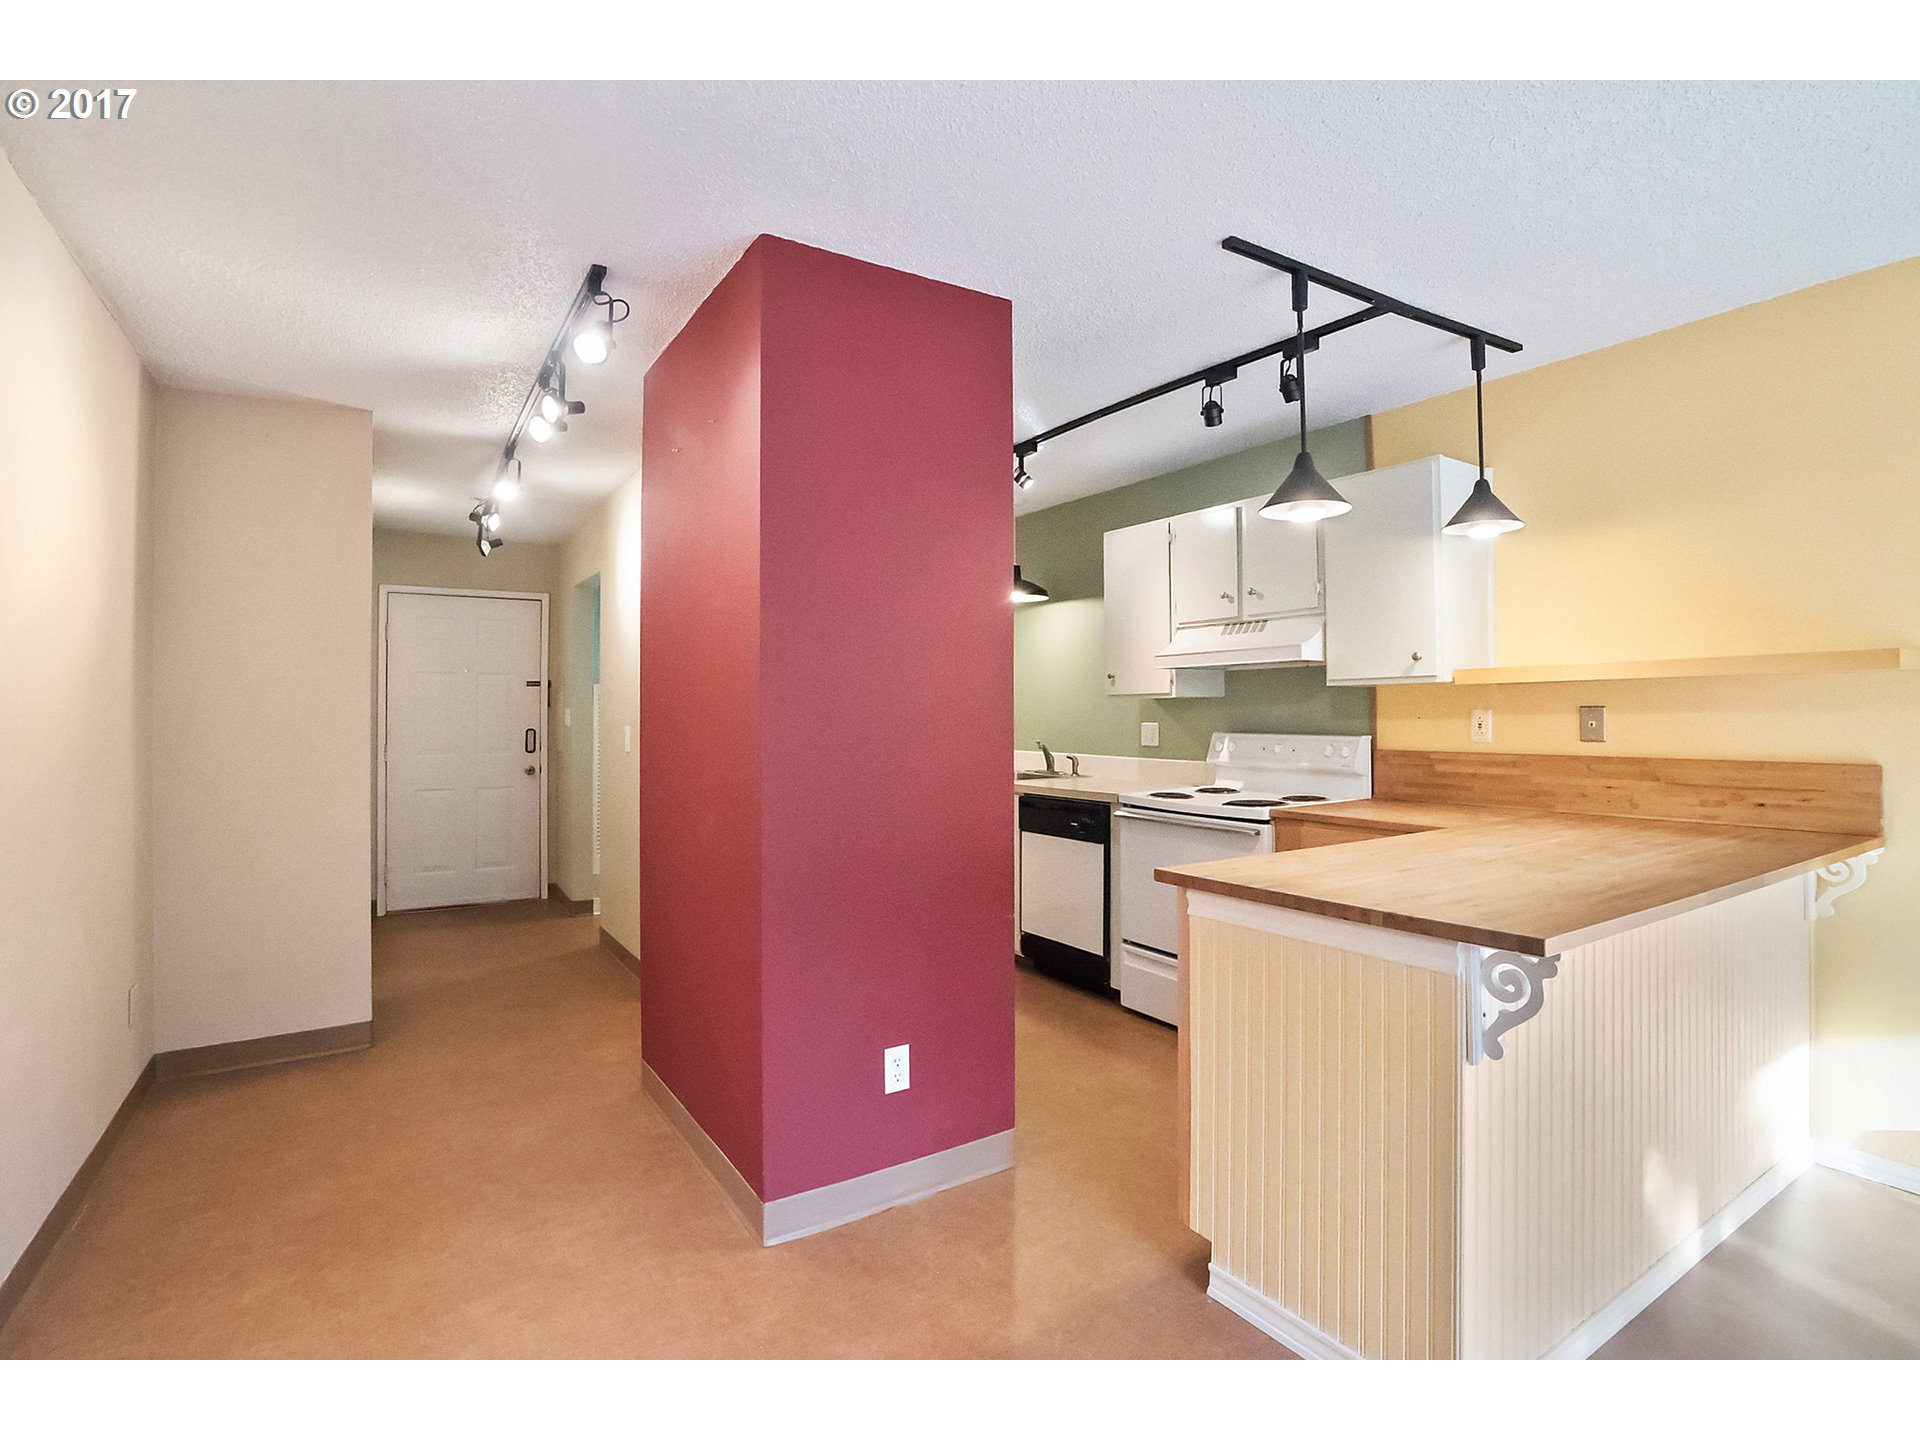 670 sq. ft 1 bedrooms 1 bathrooms  House ,Portland, OR